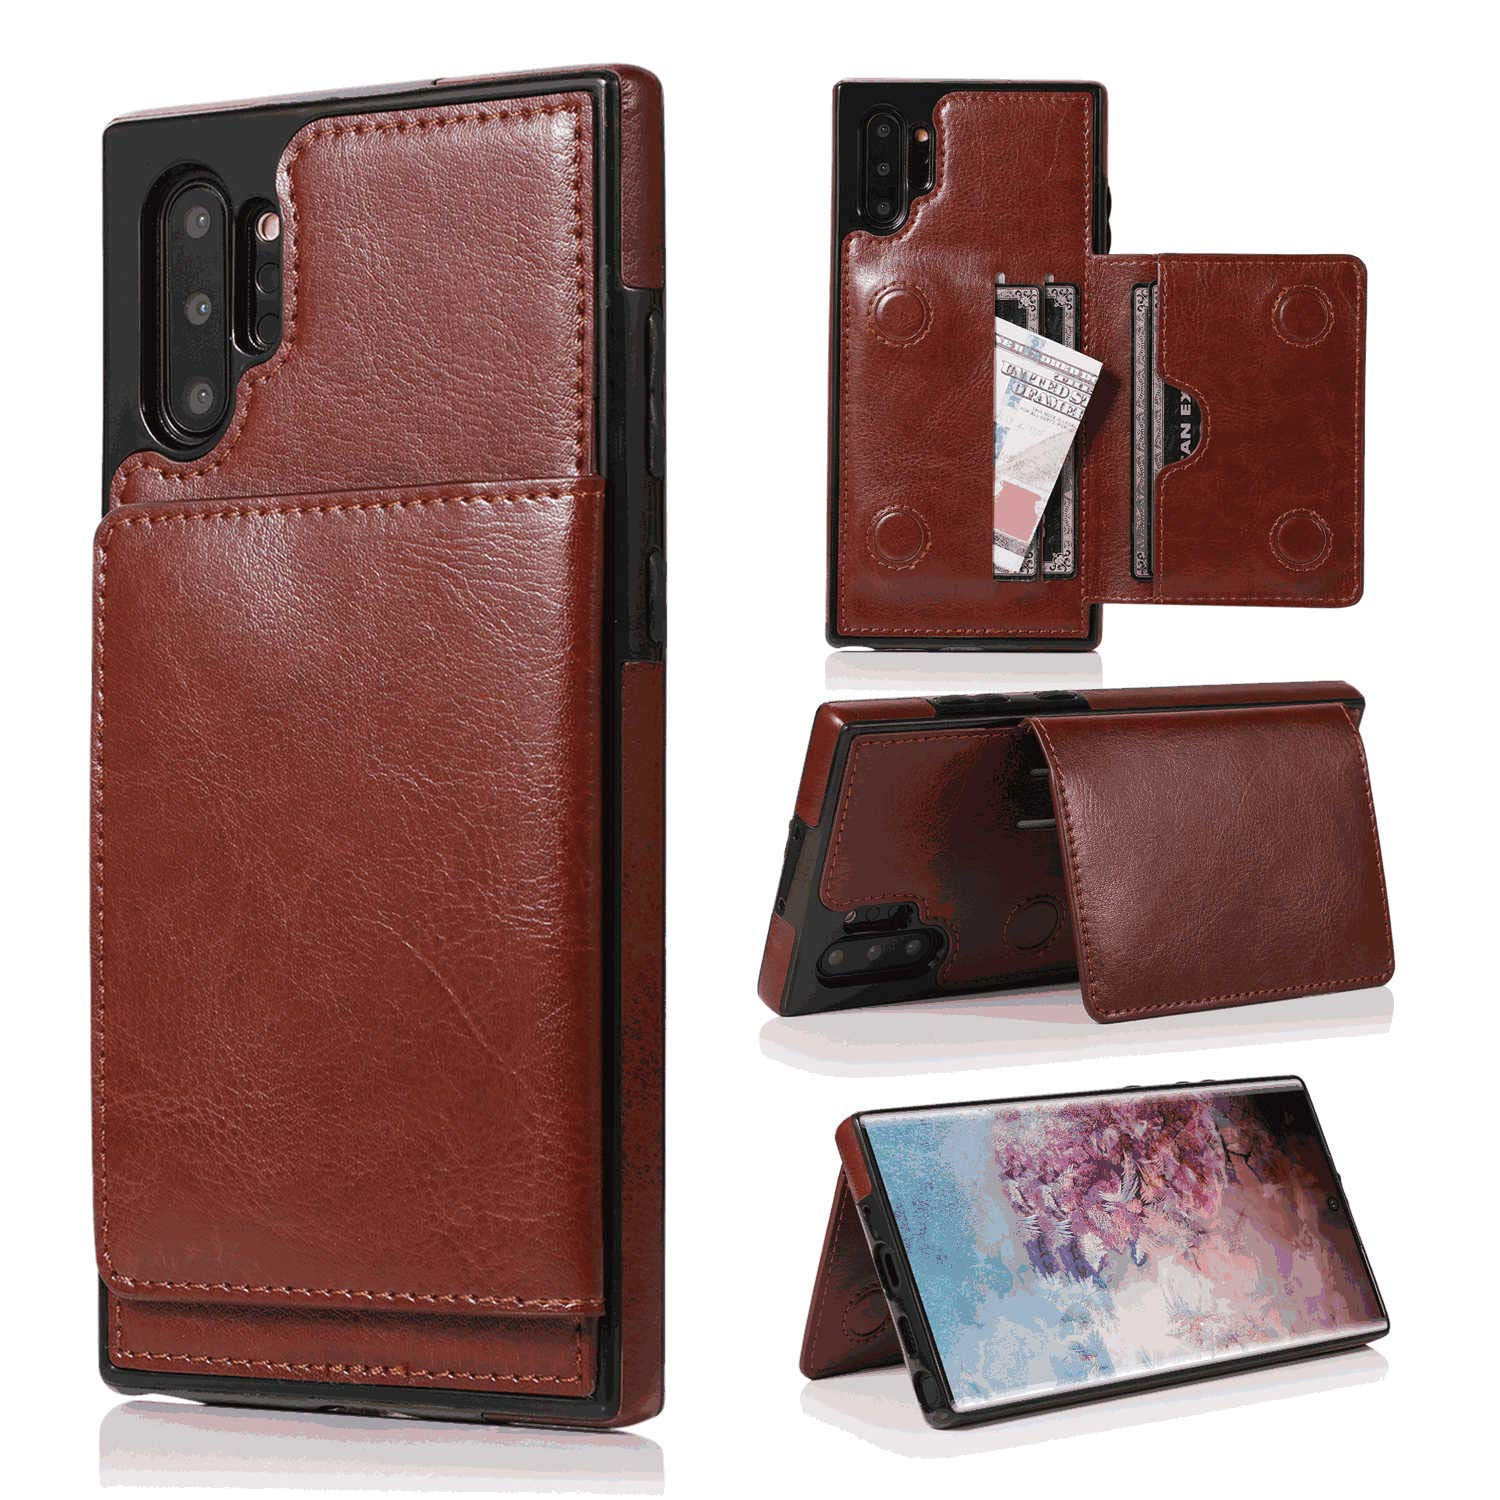 Wallet Cover for iPhone 7 Plus Business Gifts Leather Case Compatible with iPhone 7 Plus with Extra Waterproof Case Pouch